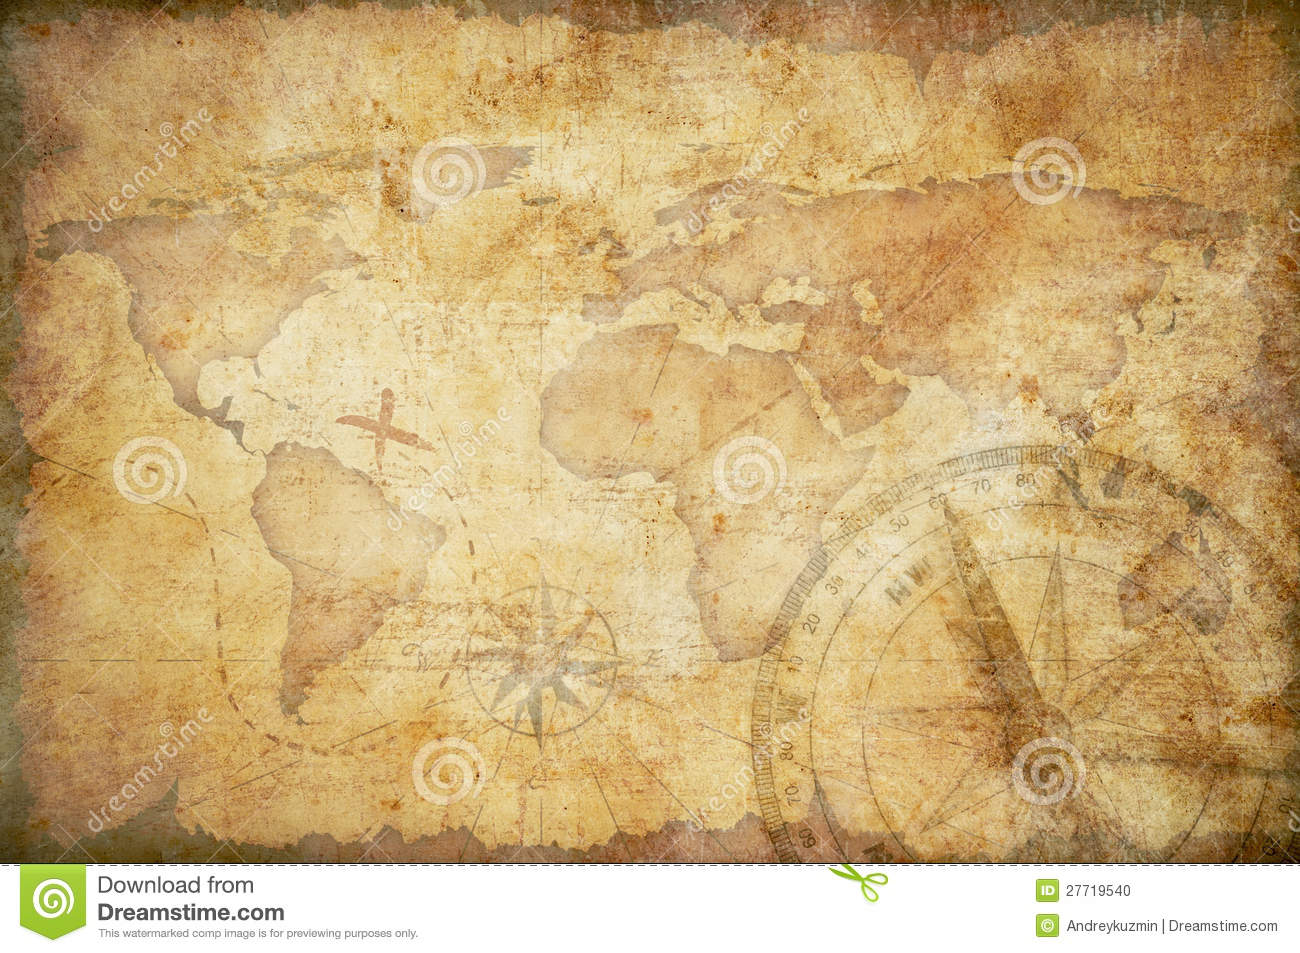 Aged treasure map background stock illustration illustration of aged treasure map background gumiabroncs Image collections